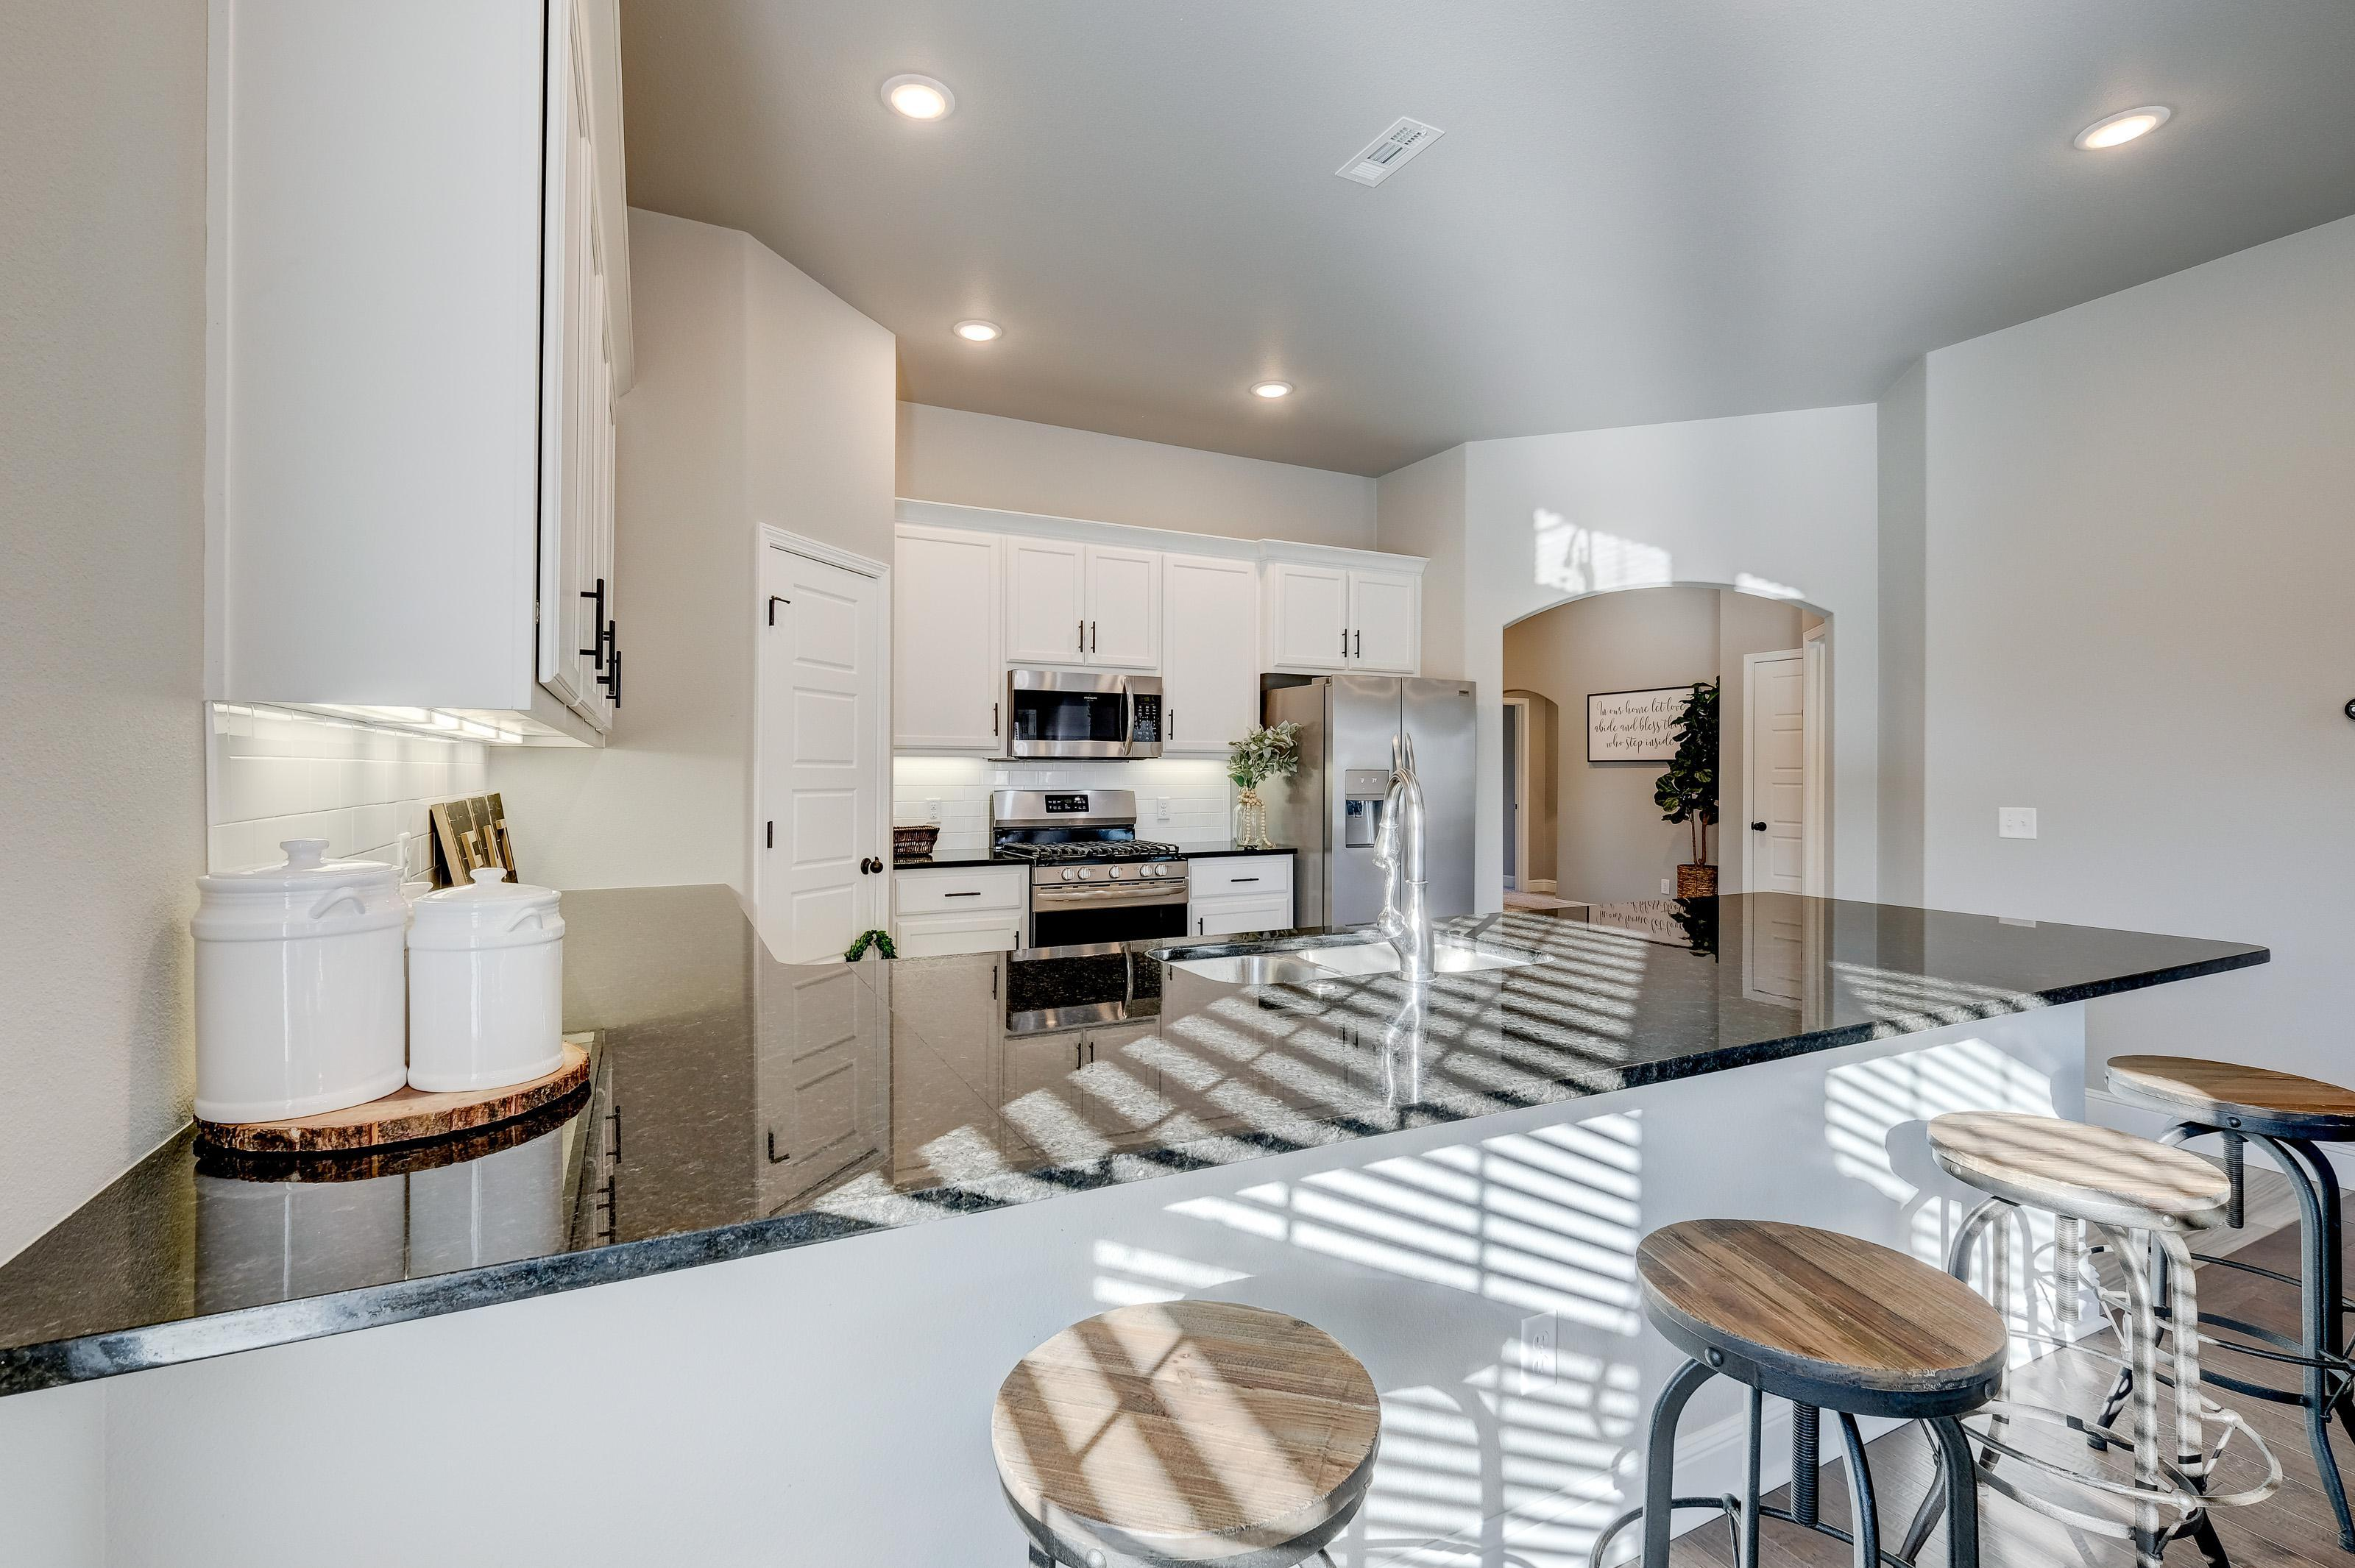 Kitchen featured in the 2050KP Series By Schuber Mitchell Homes in Joplin, MO